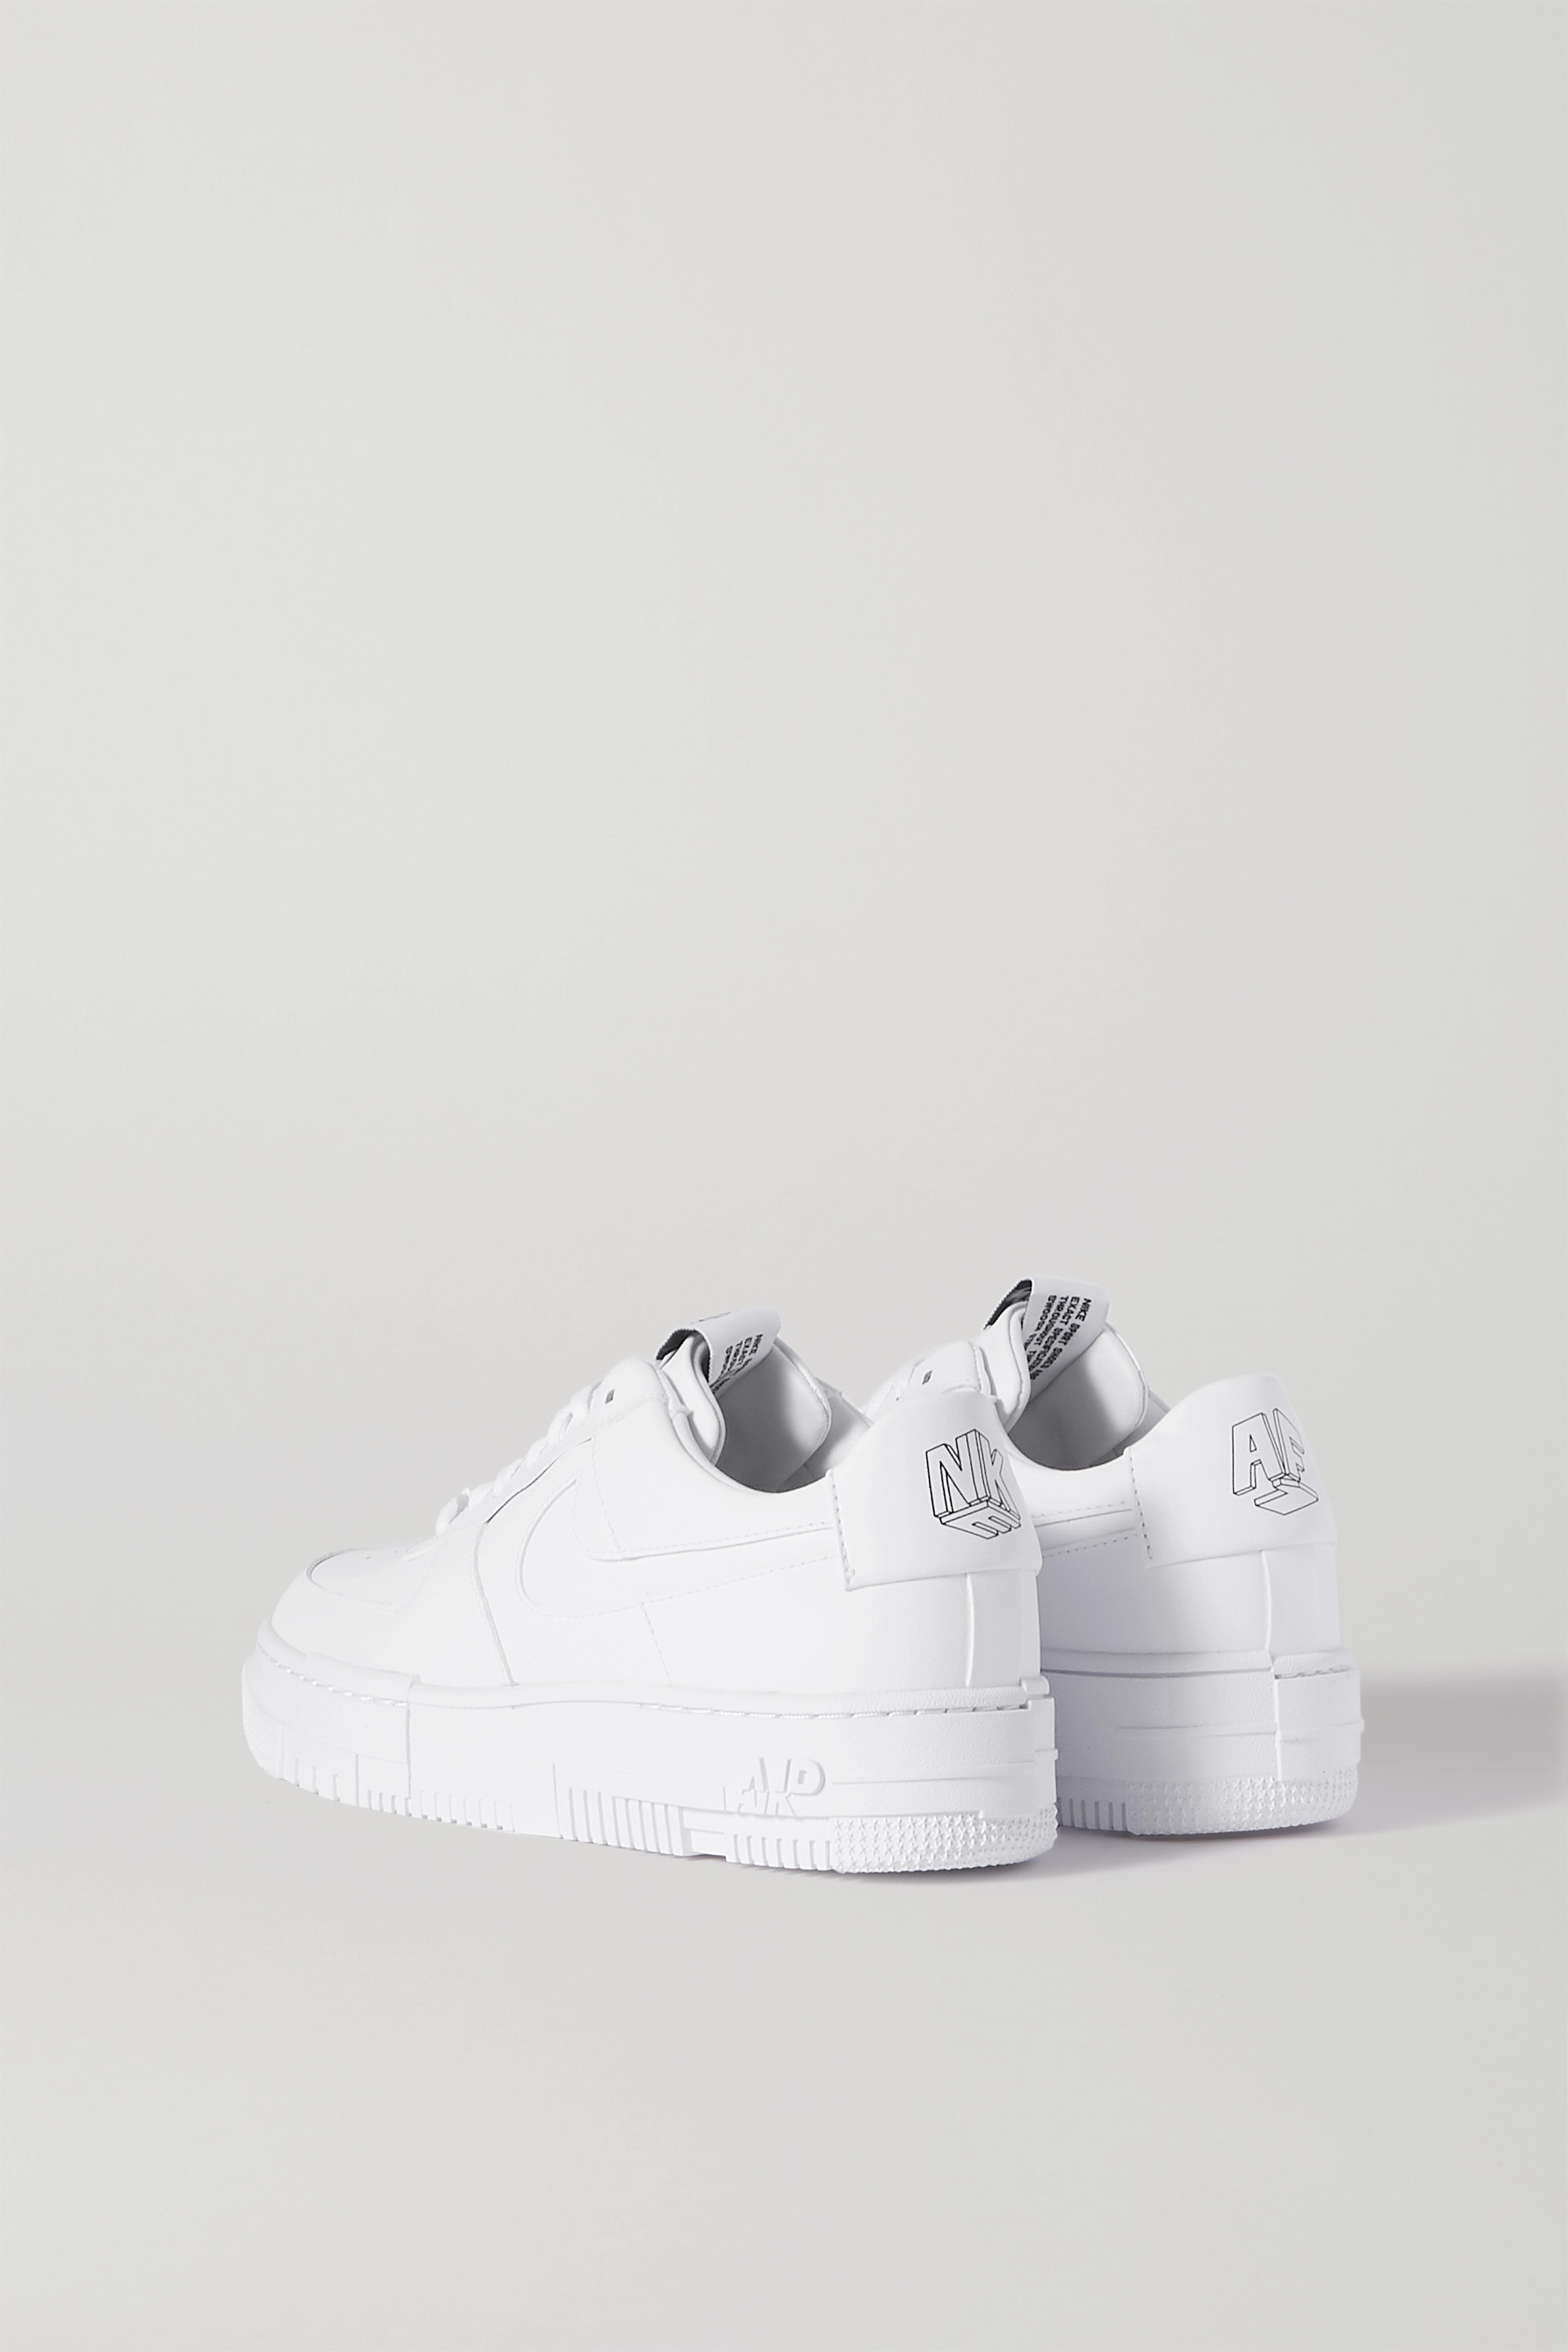 Nike Air Force 1 Pixel leather sneakers